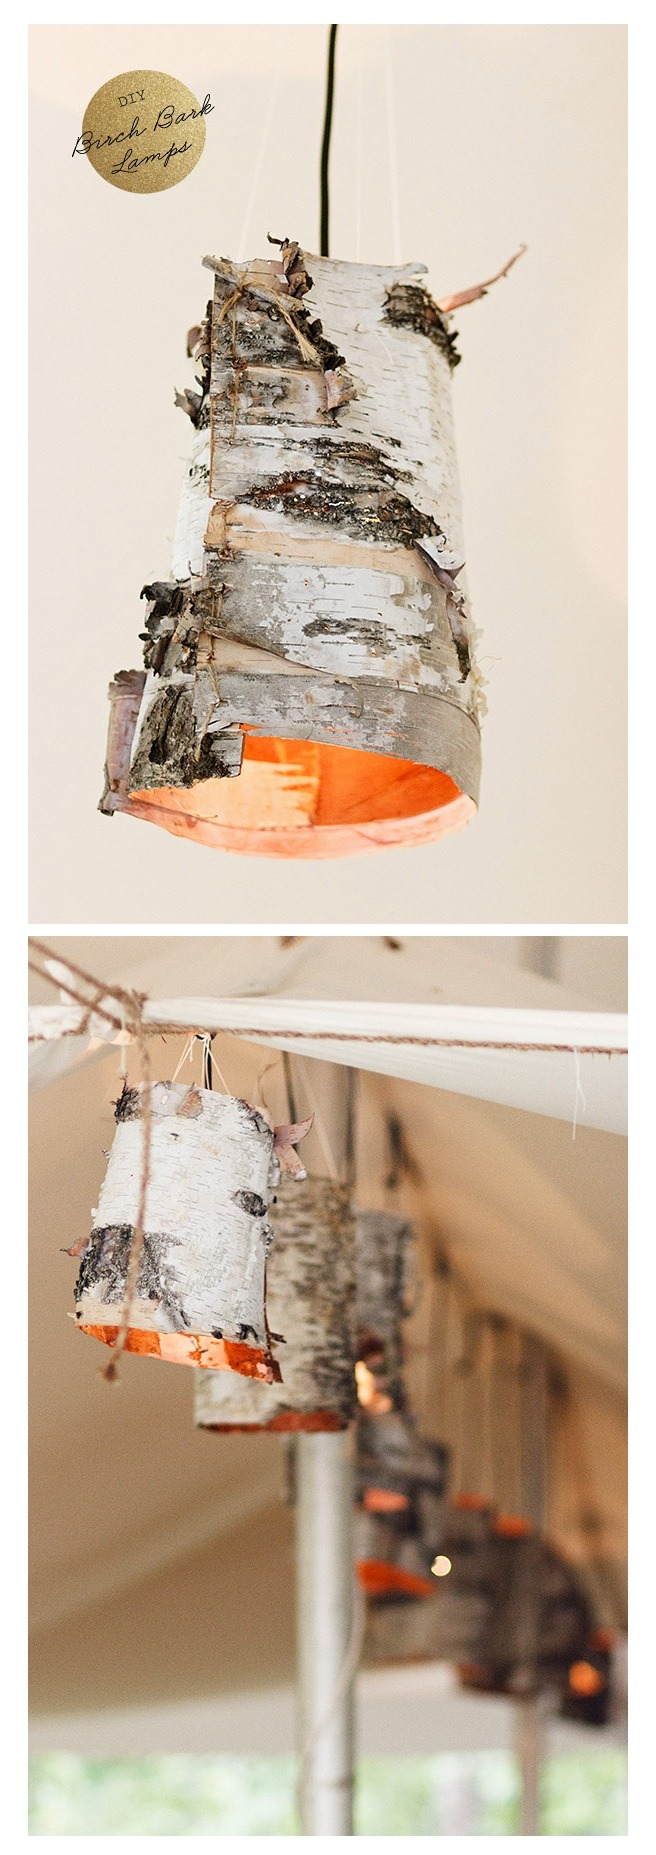 Image: Birch Bark Lamp DIY via Ruffled I'm smitten by this birch bark lamp DIY! I realize that this was made for a wedding, but one or two of these hanging in my home would work just as well:)